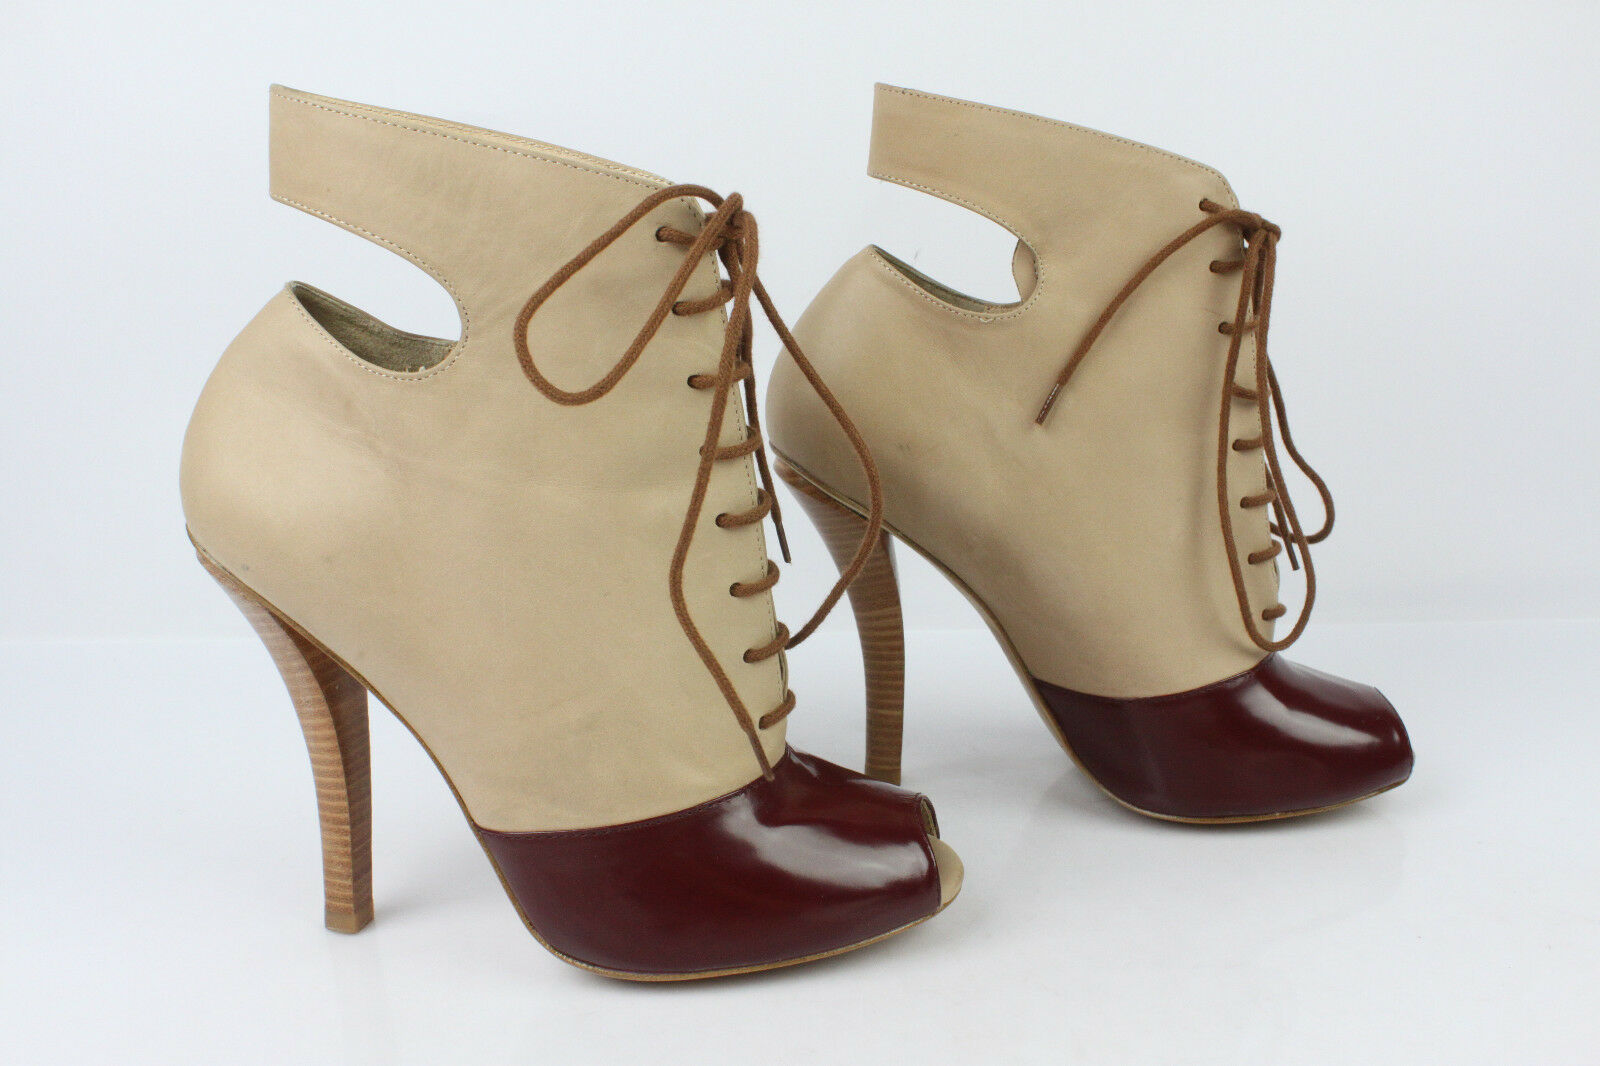 Boots Lace ASKALICE All Leather Leather Leather Beige and Bordeaux T 39 TOP CONDITION 695e52